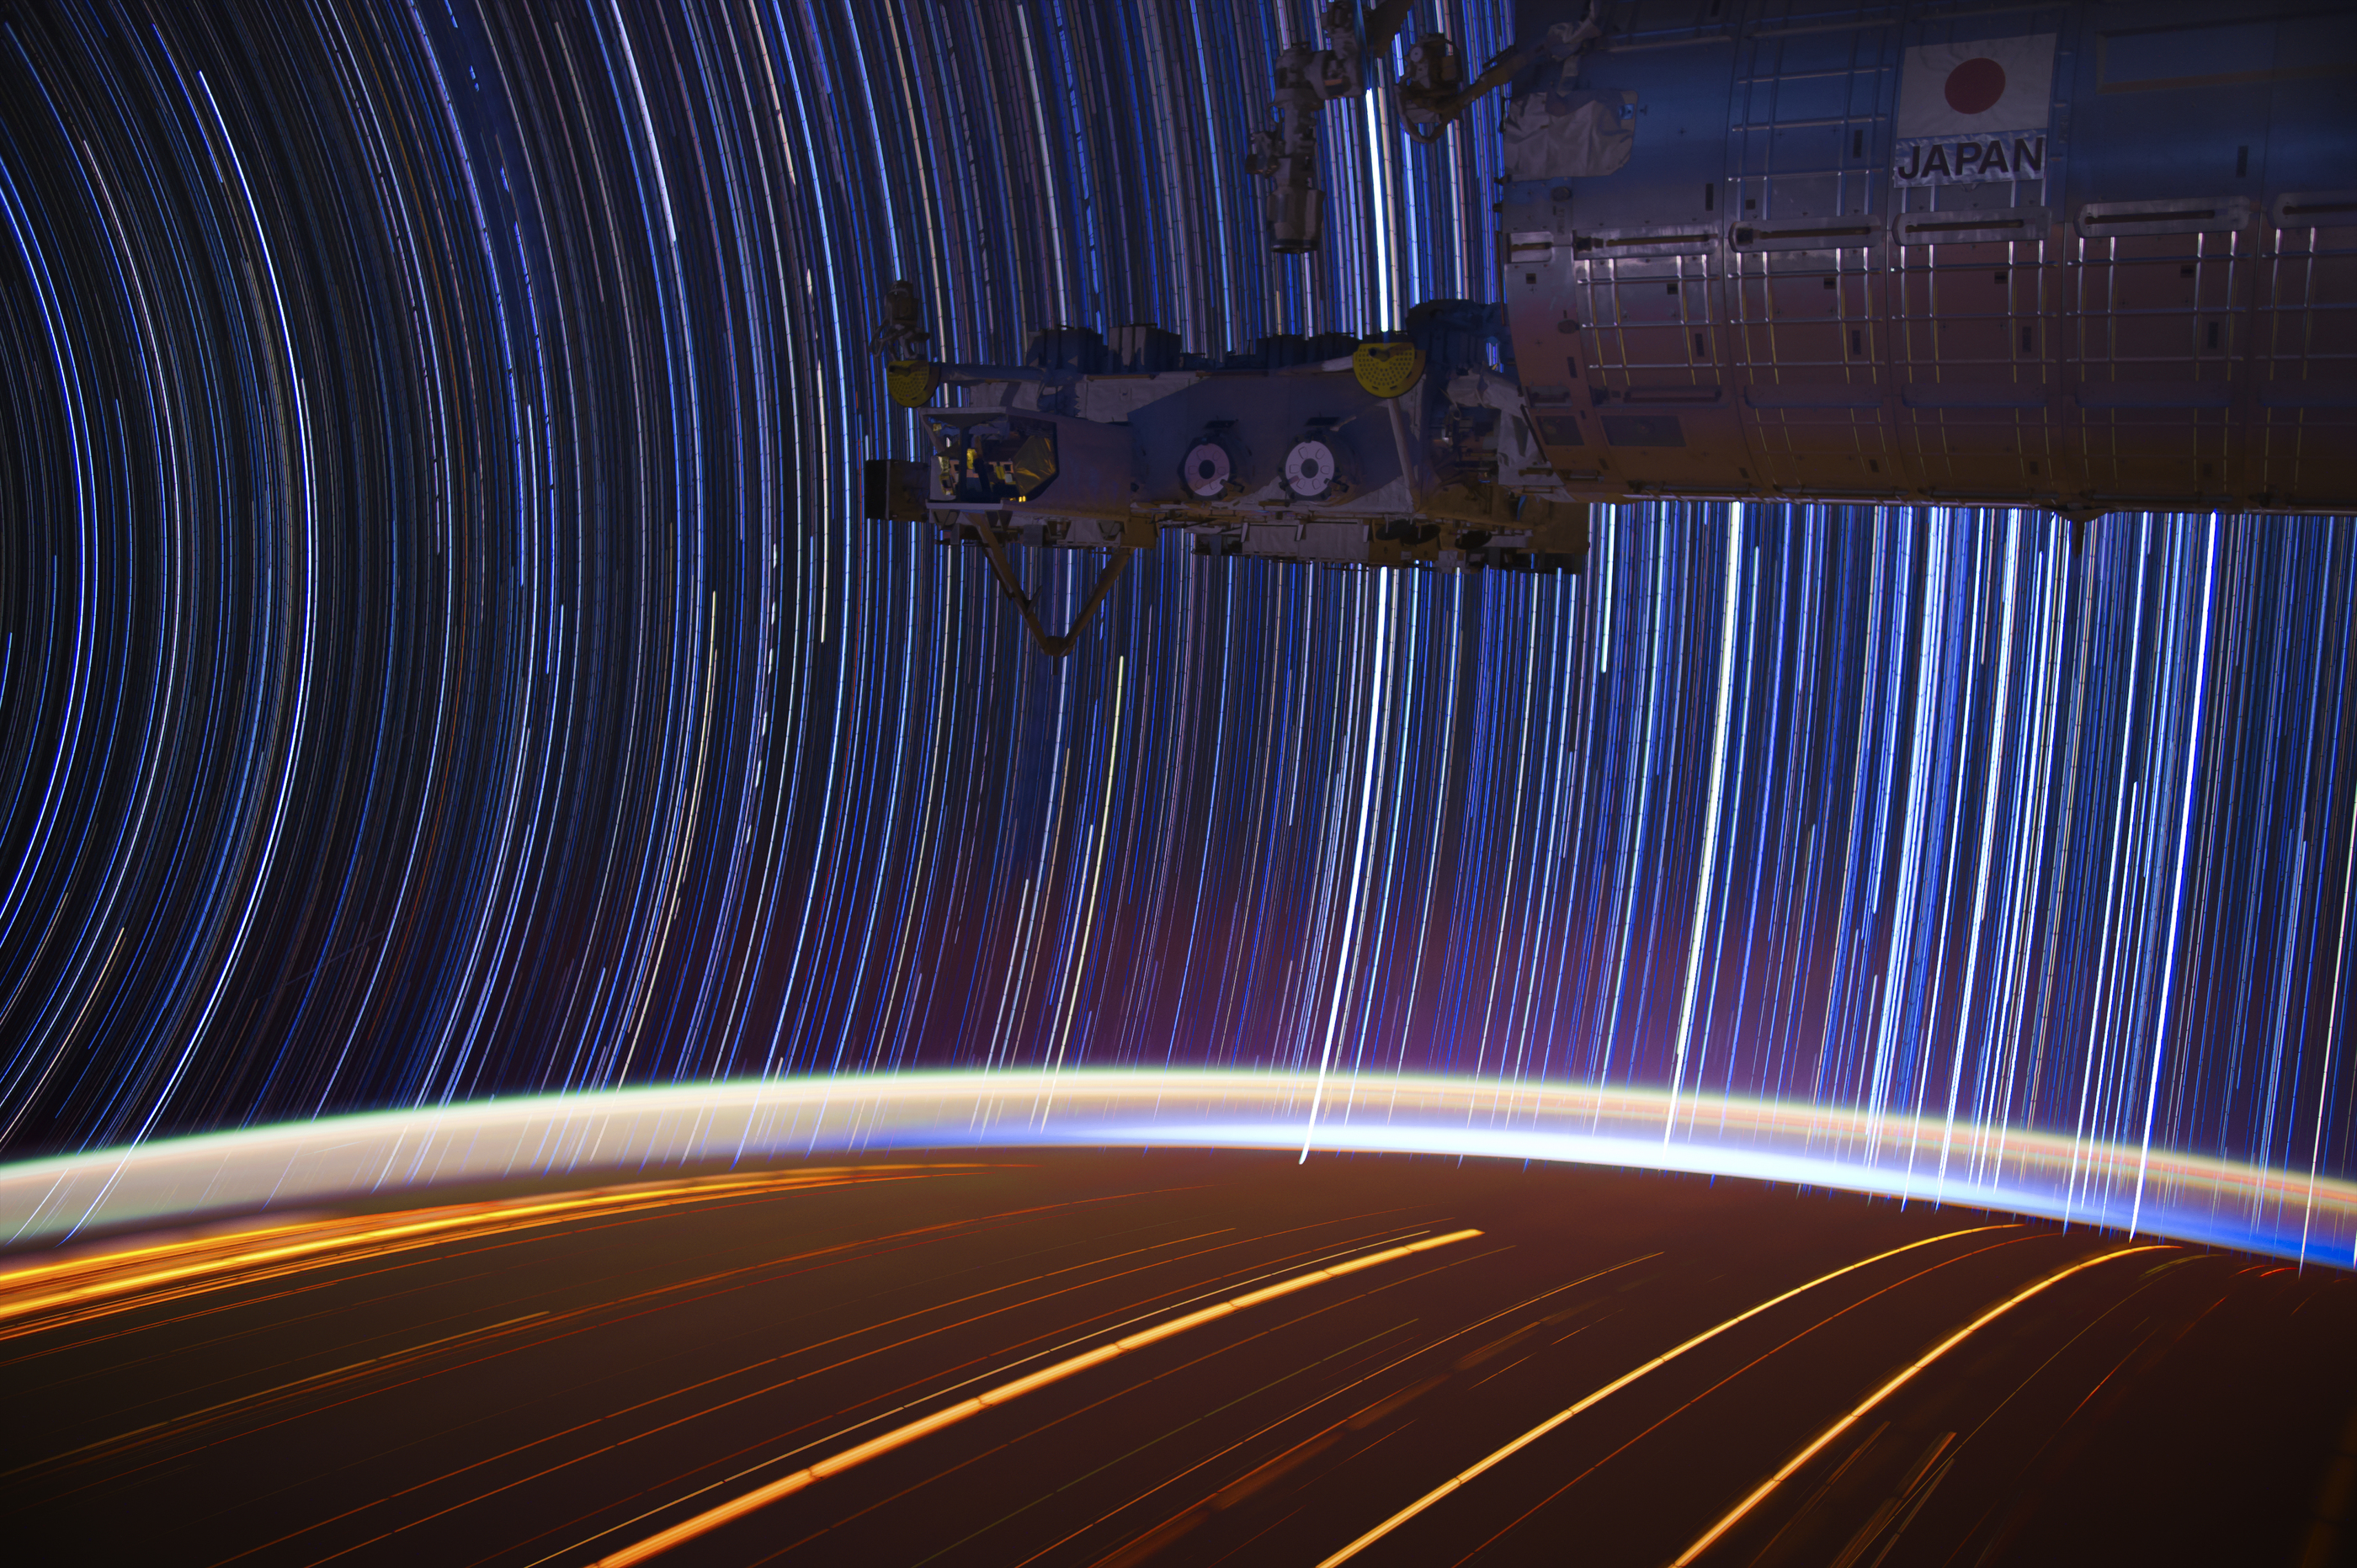 http://cdn1.pri.org/sites/default/files/www.sciencefriday.com/wp-content/uploads/2016/12/star-trail-15a-copy.jpg